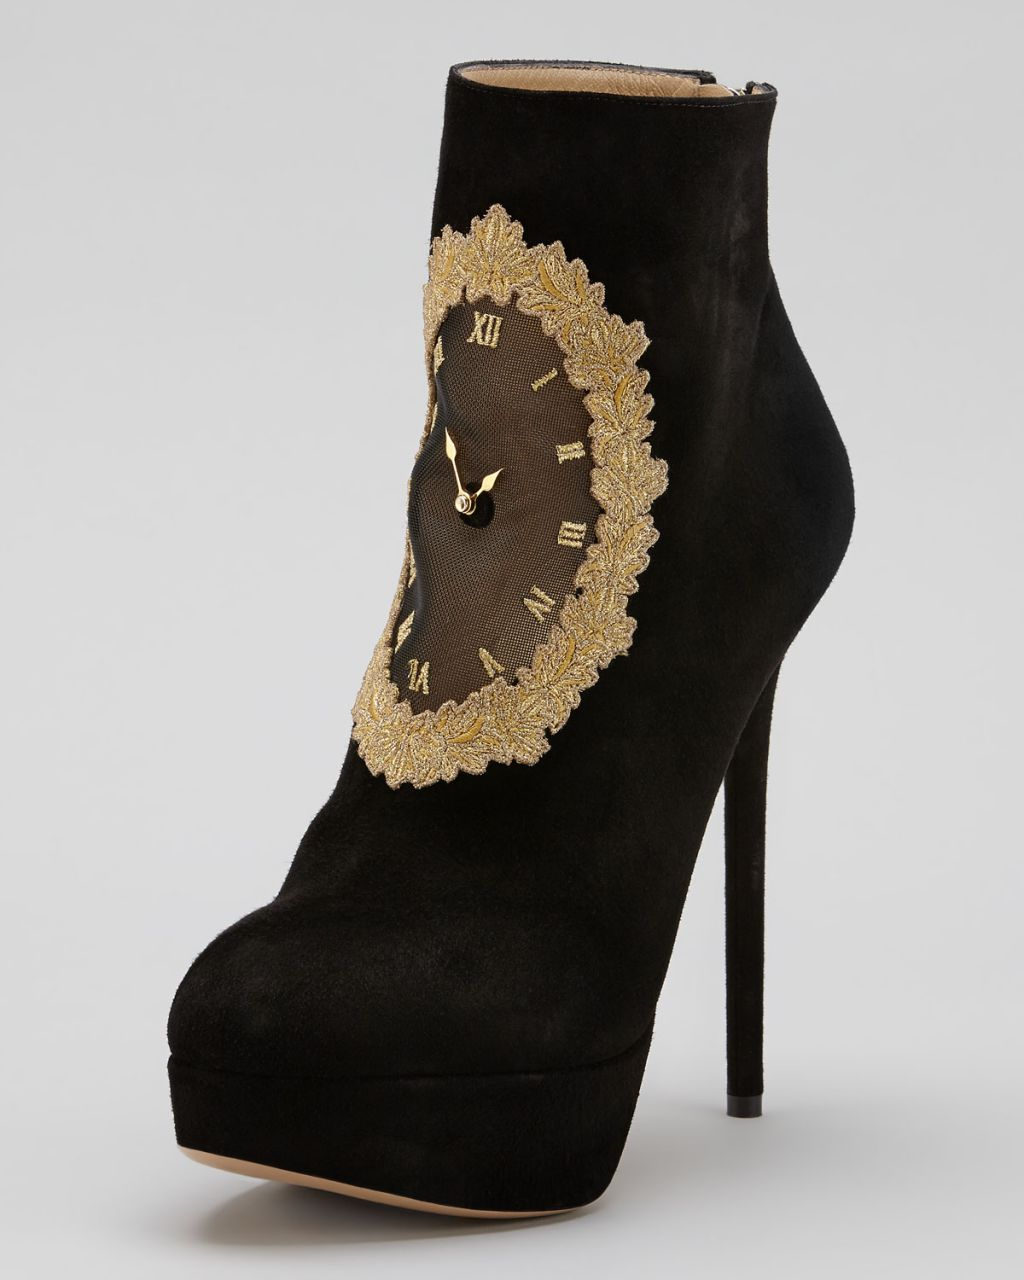 Charlotte Olympia - On Time Clock Face Suede Ankle Boot - Siyah